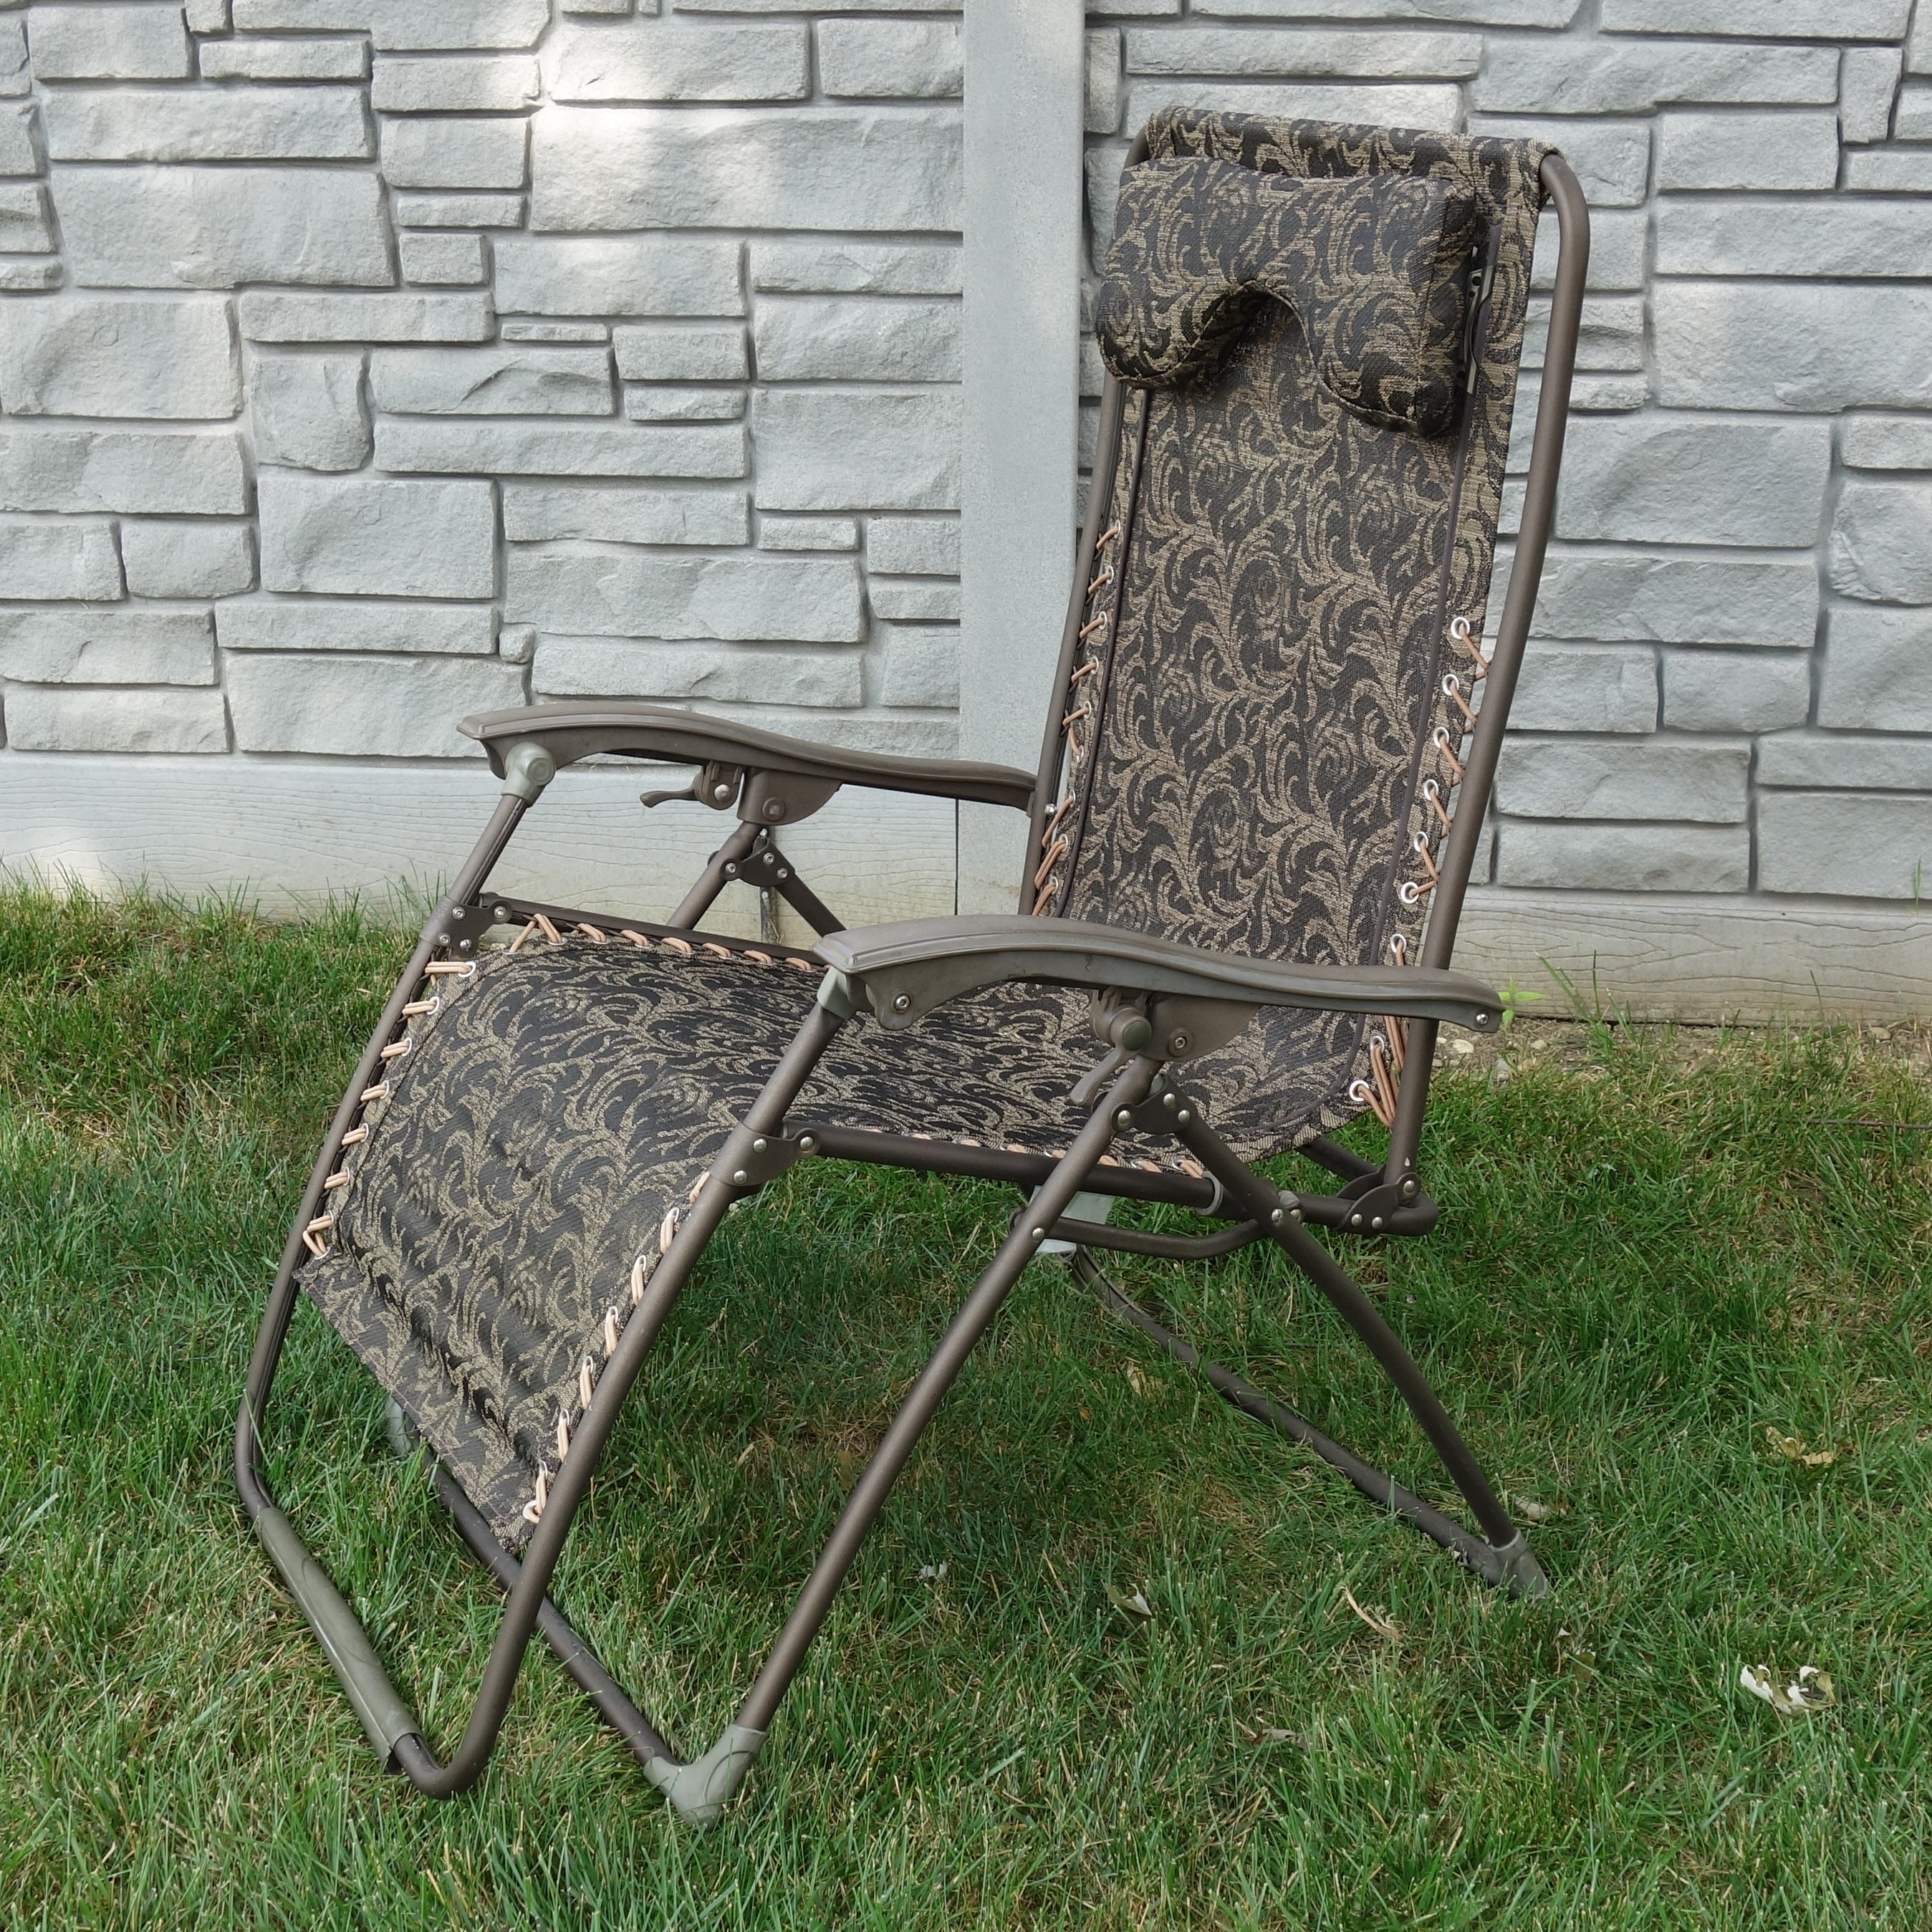 zero gravity patio chair xl bedroom chairs ireland frontgate reclining lawn ebth